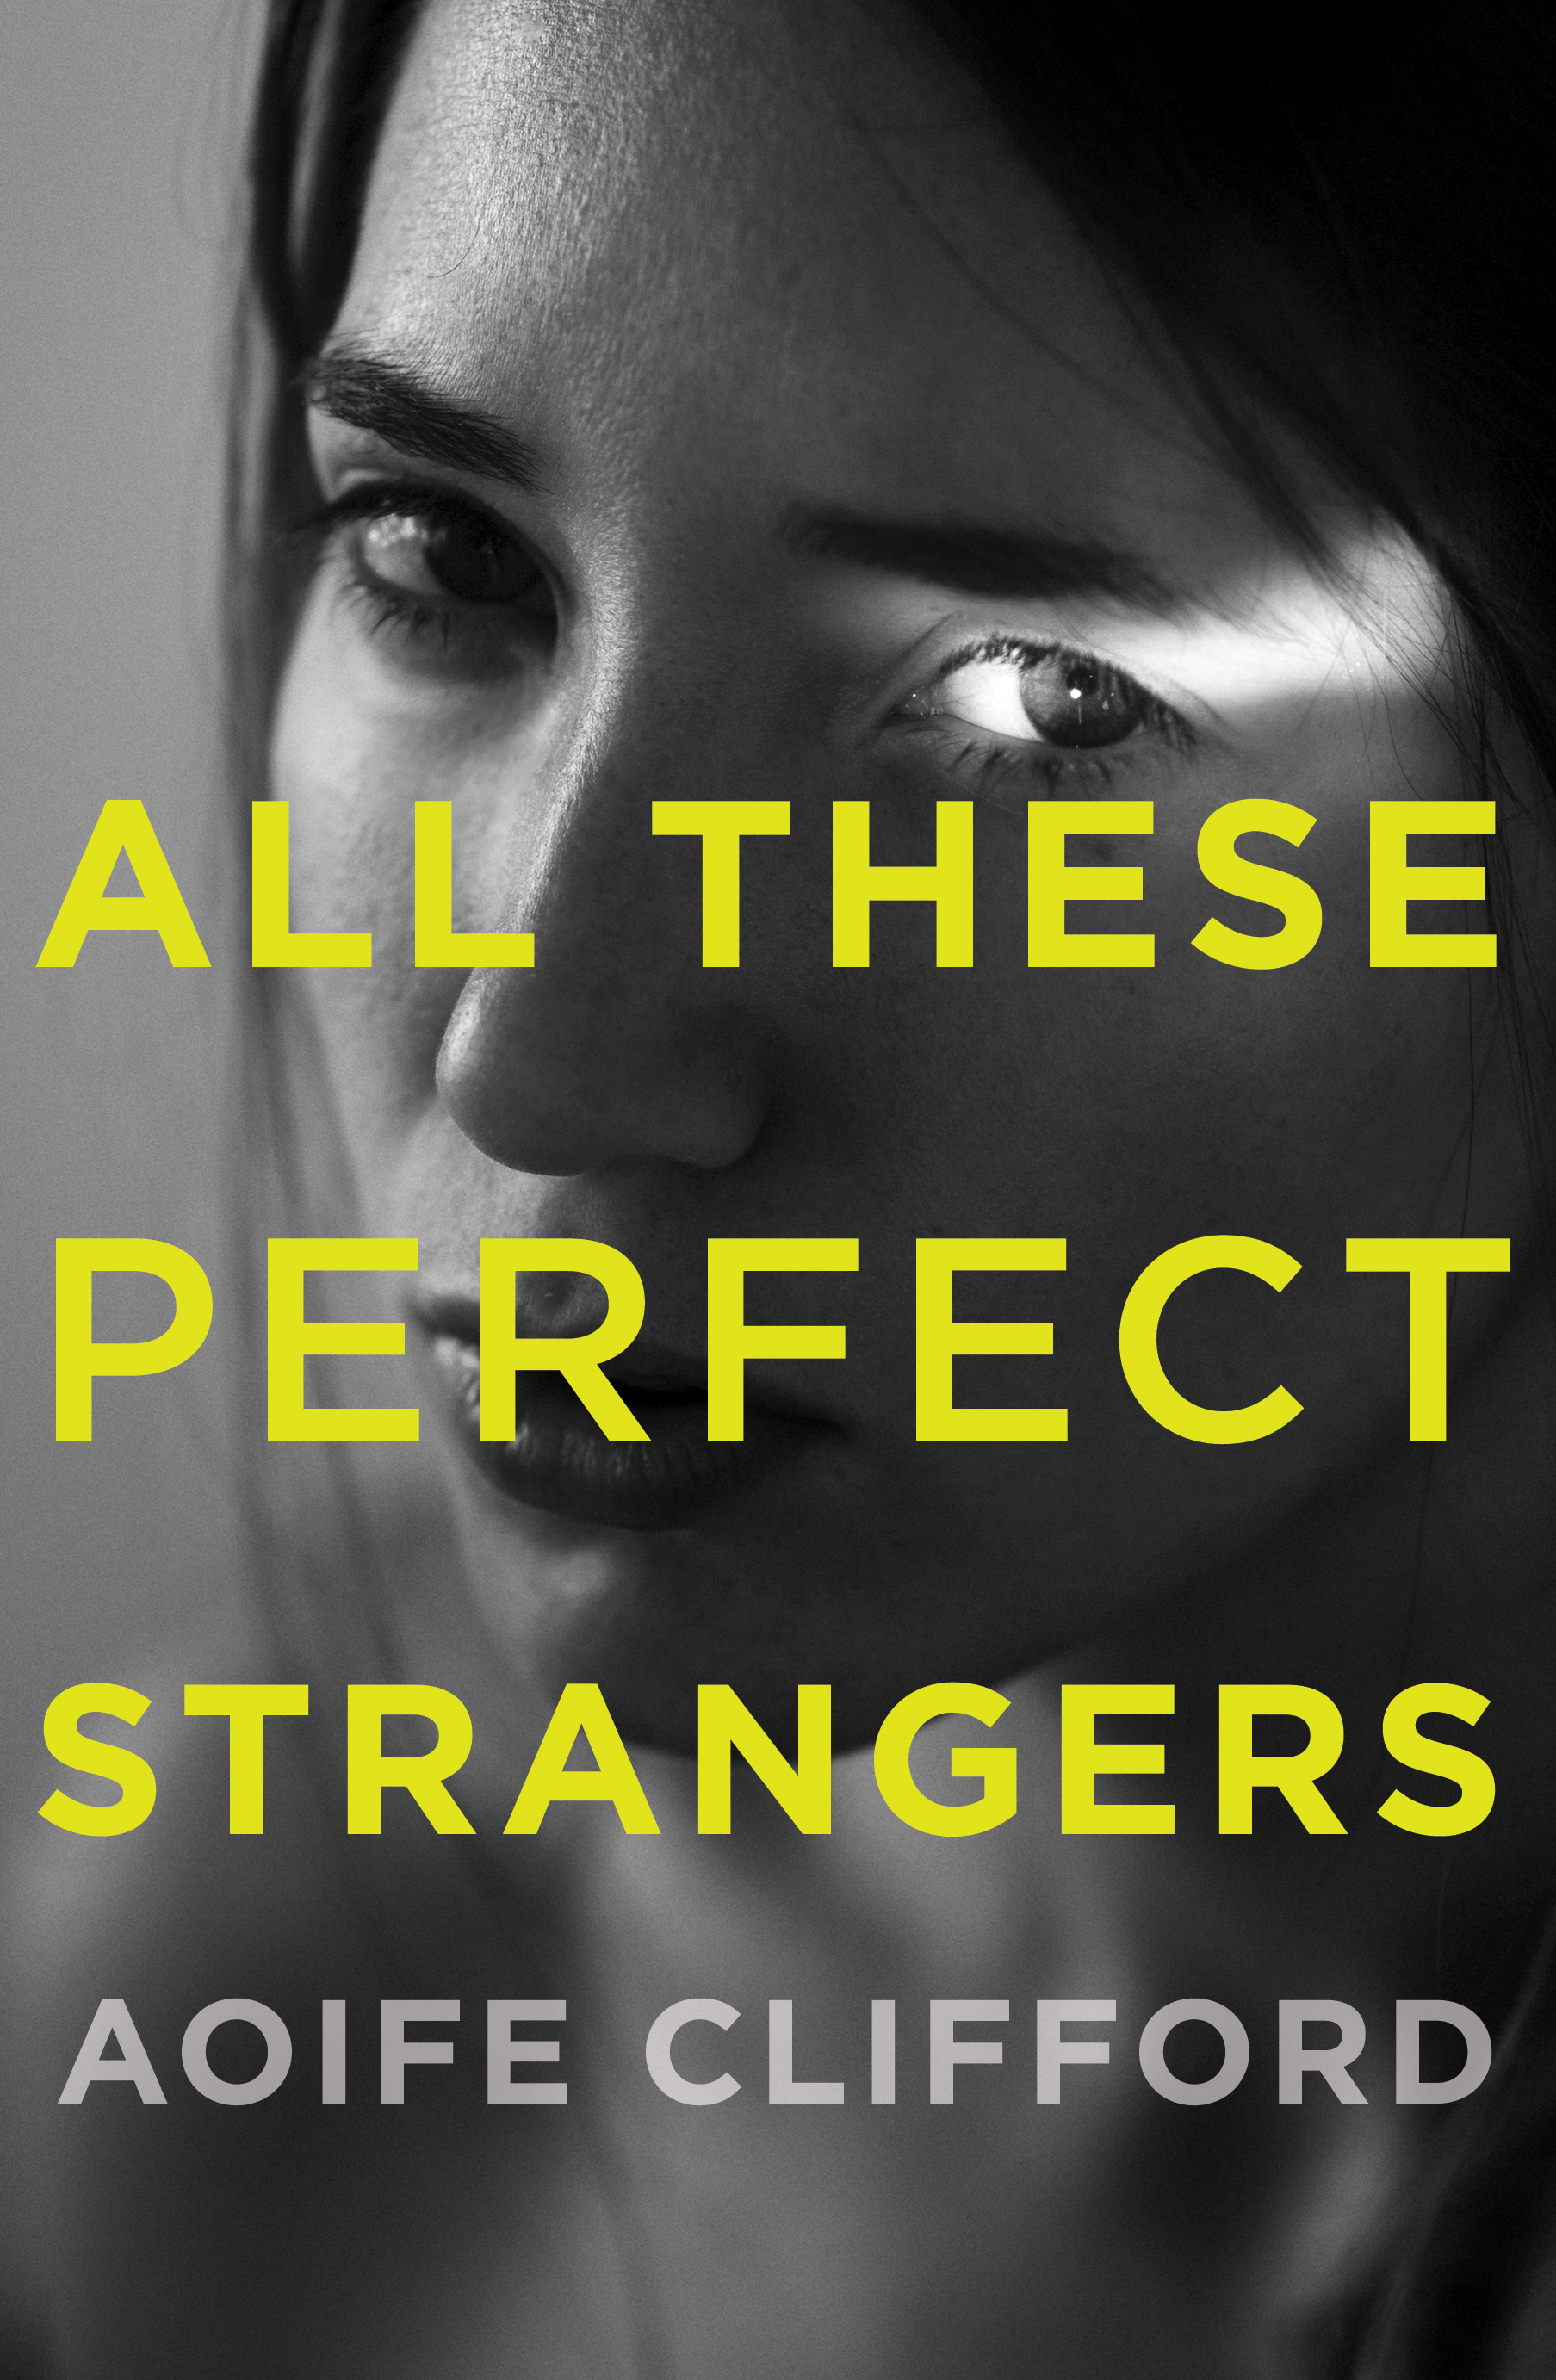 All these perfect strangers 9781925310726 hr